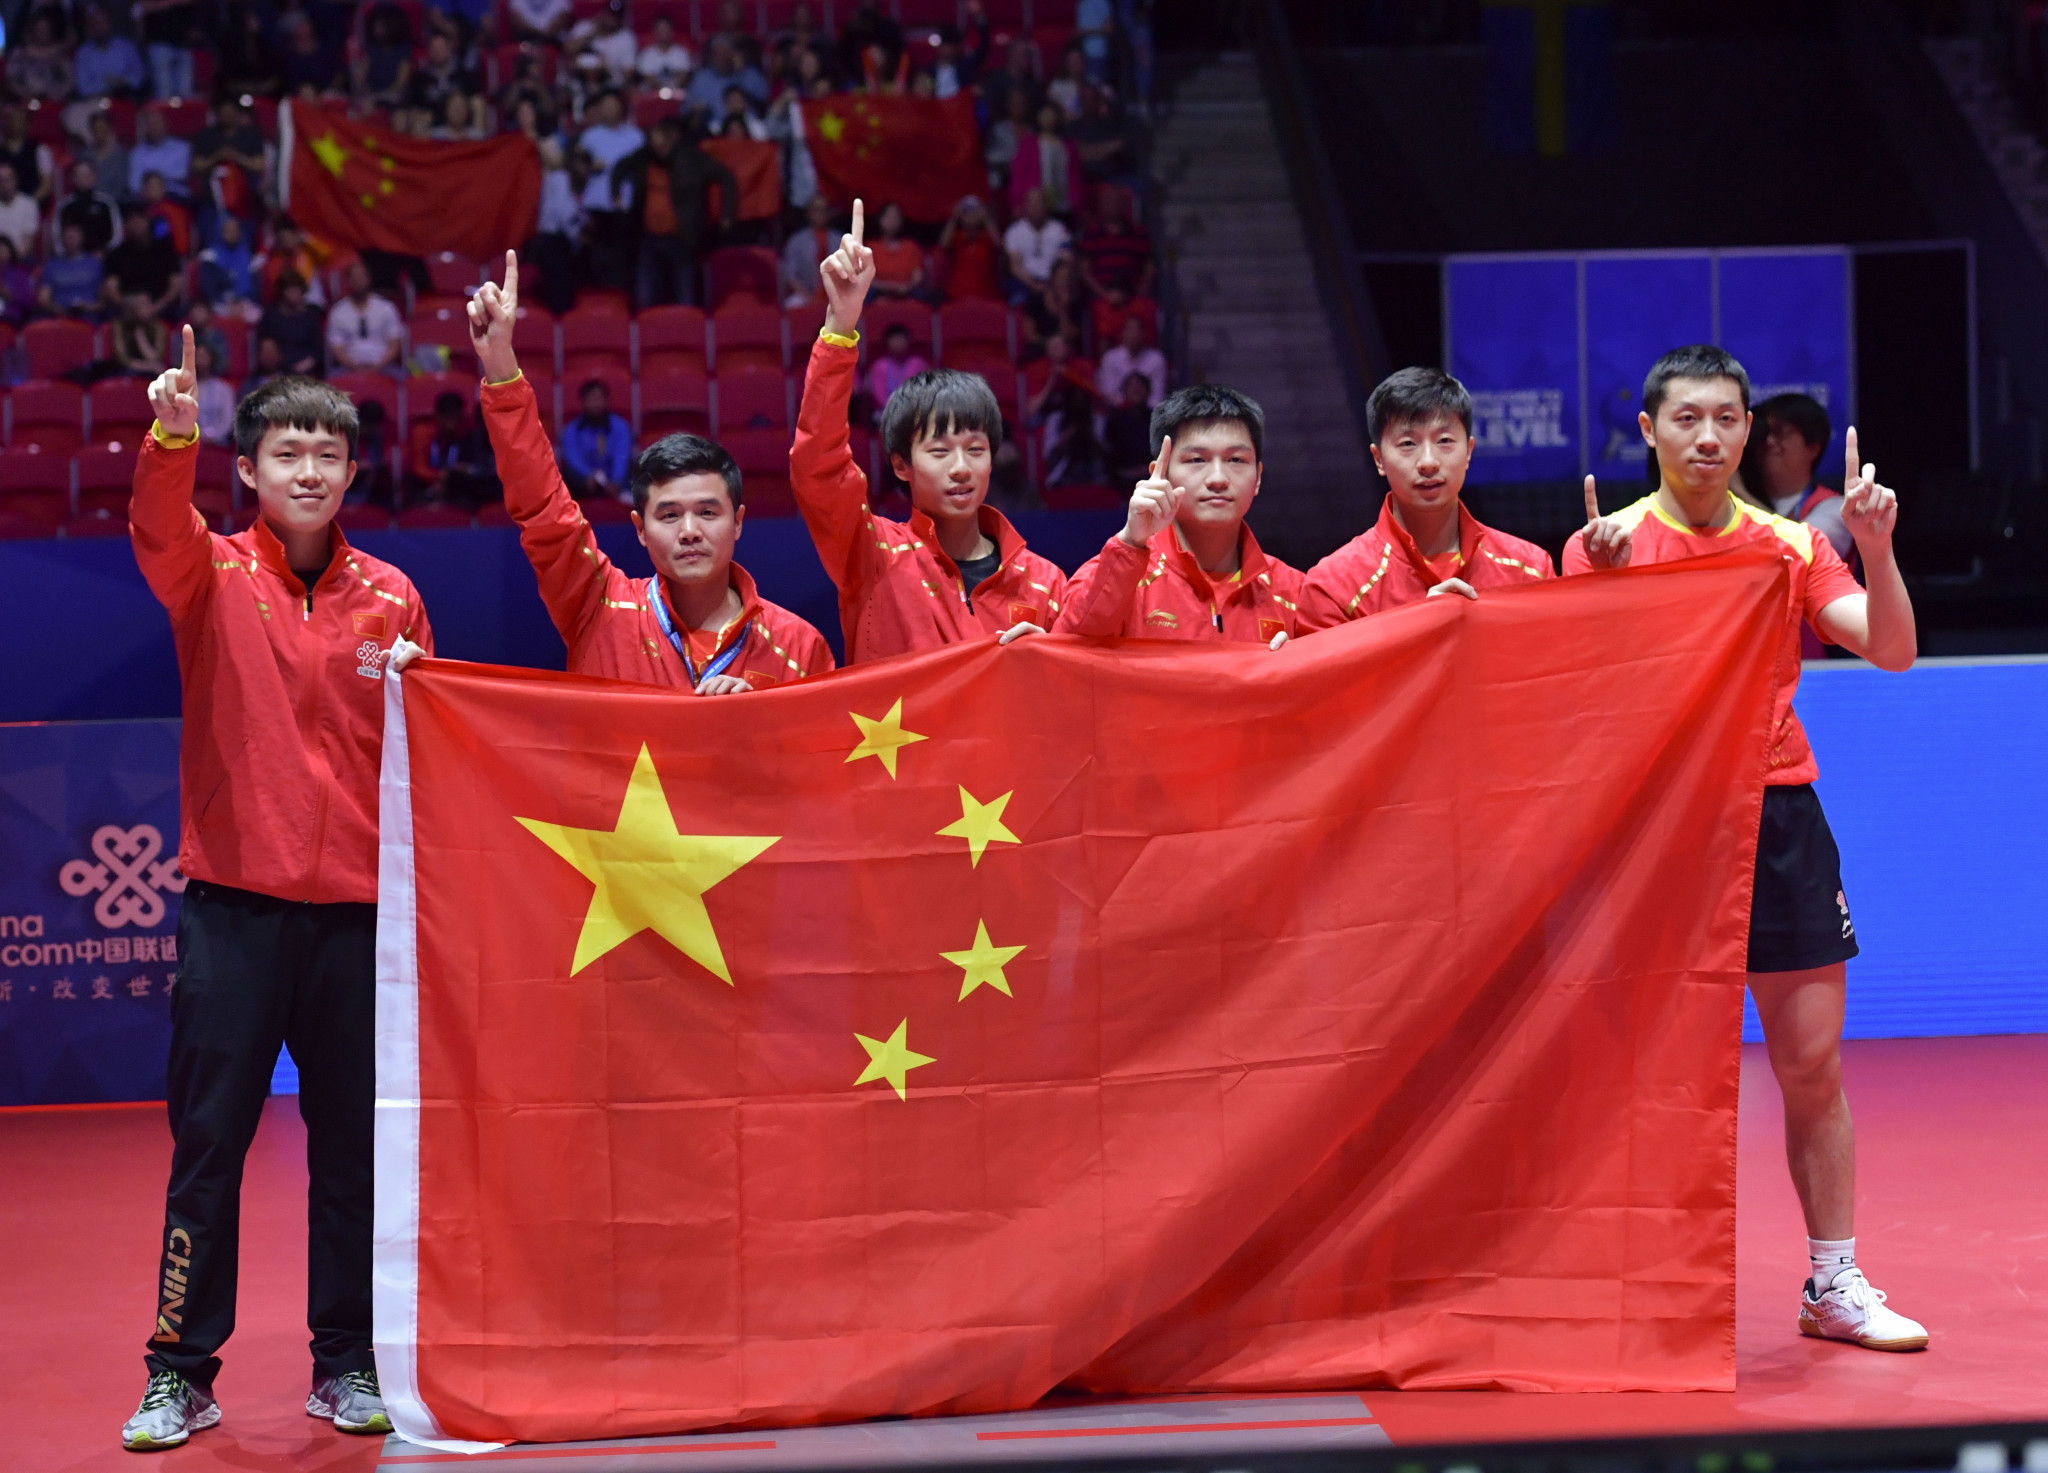 China won the men's and women's team titles in 2018 ©Getty Images